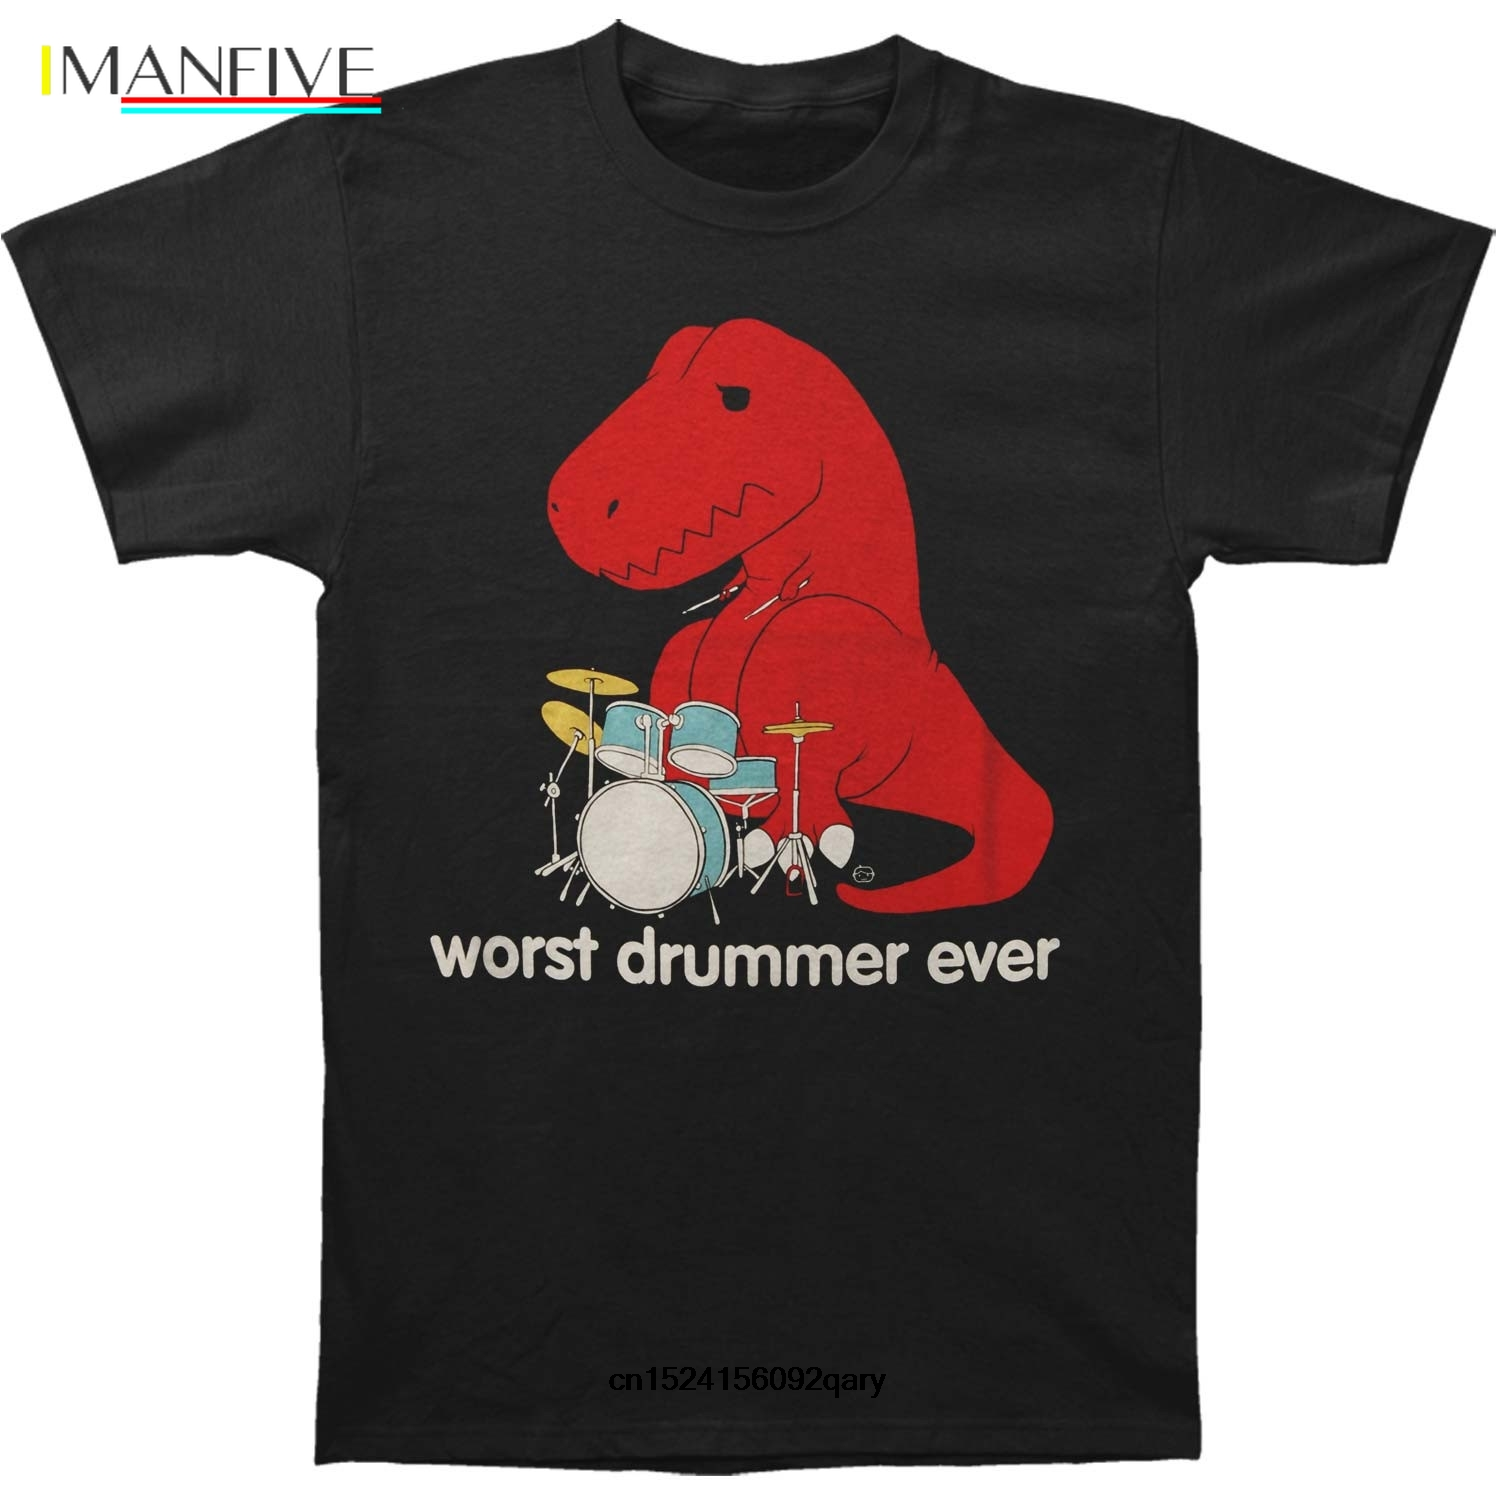 Men Funny T Shirt Women Cool tshirt Humor Worst Drummer Ever T-shirt image